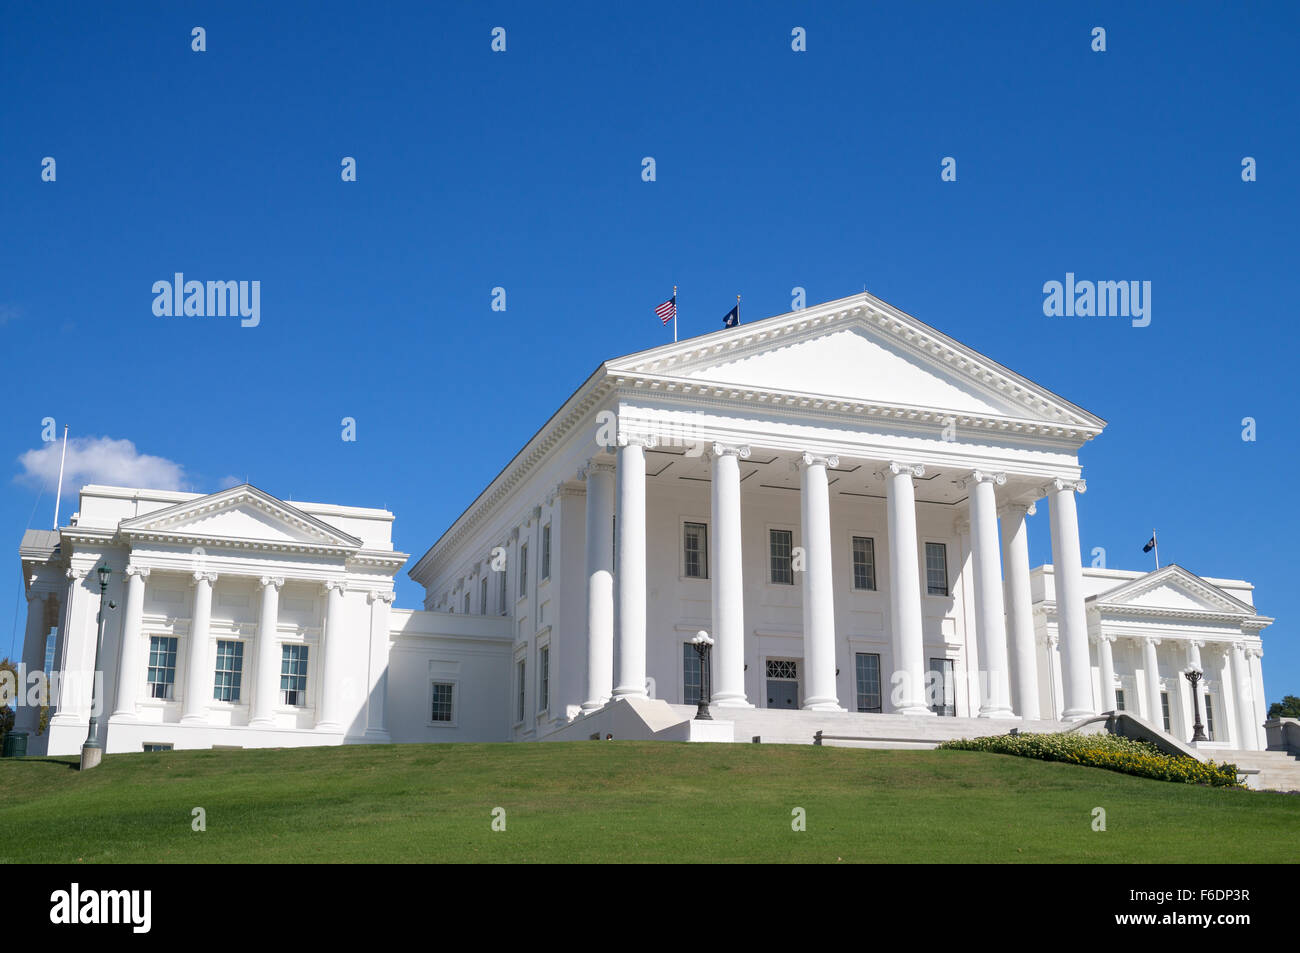 virginia-state-capitol-building-in-richm